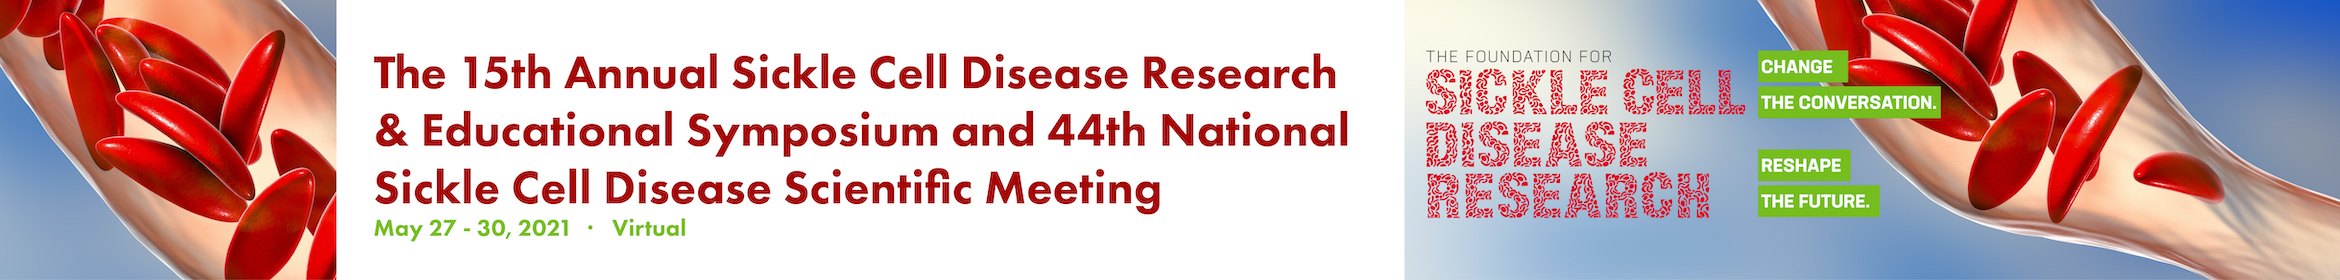 15th Annual Sickle Cell Disease Research & Educational Symposium & 44th National SCD Scientific Mtg  Main banner